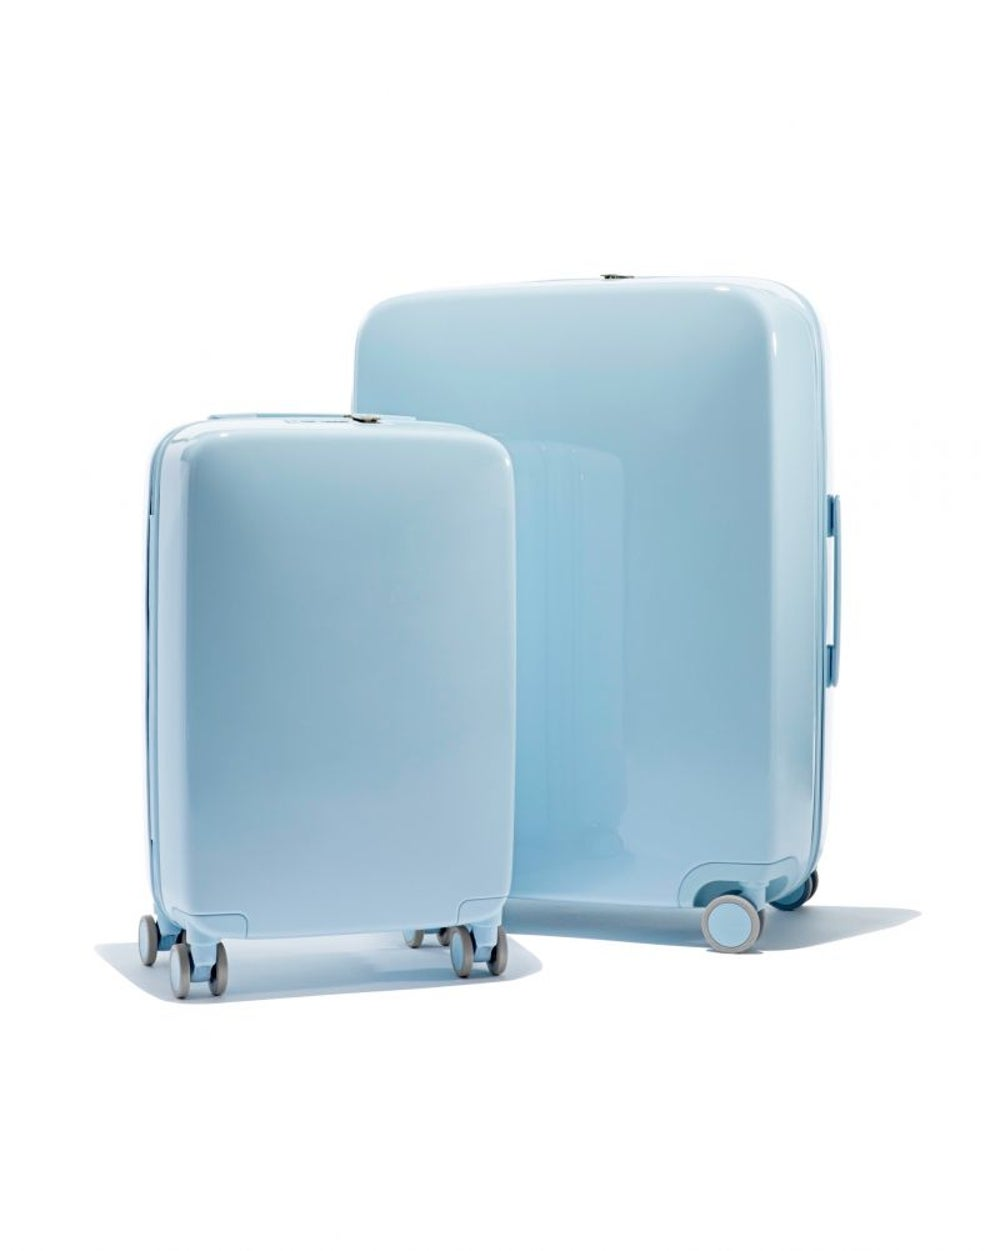 Raden's high-tech luggage